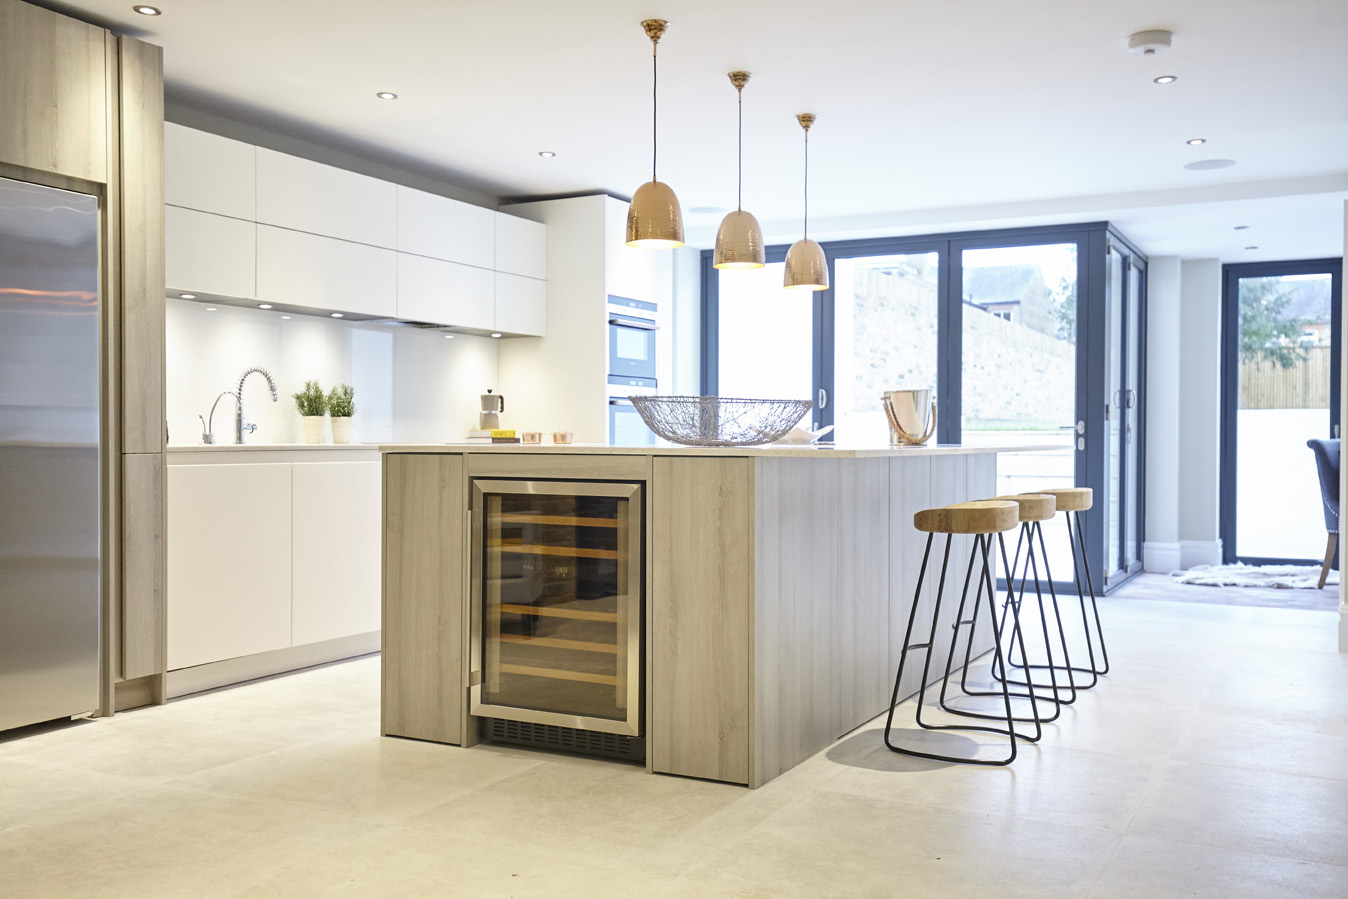 teddington kitchen